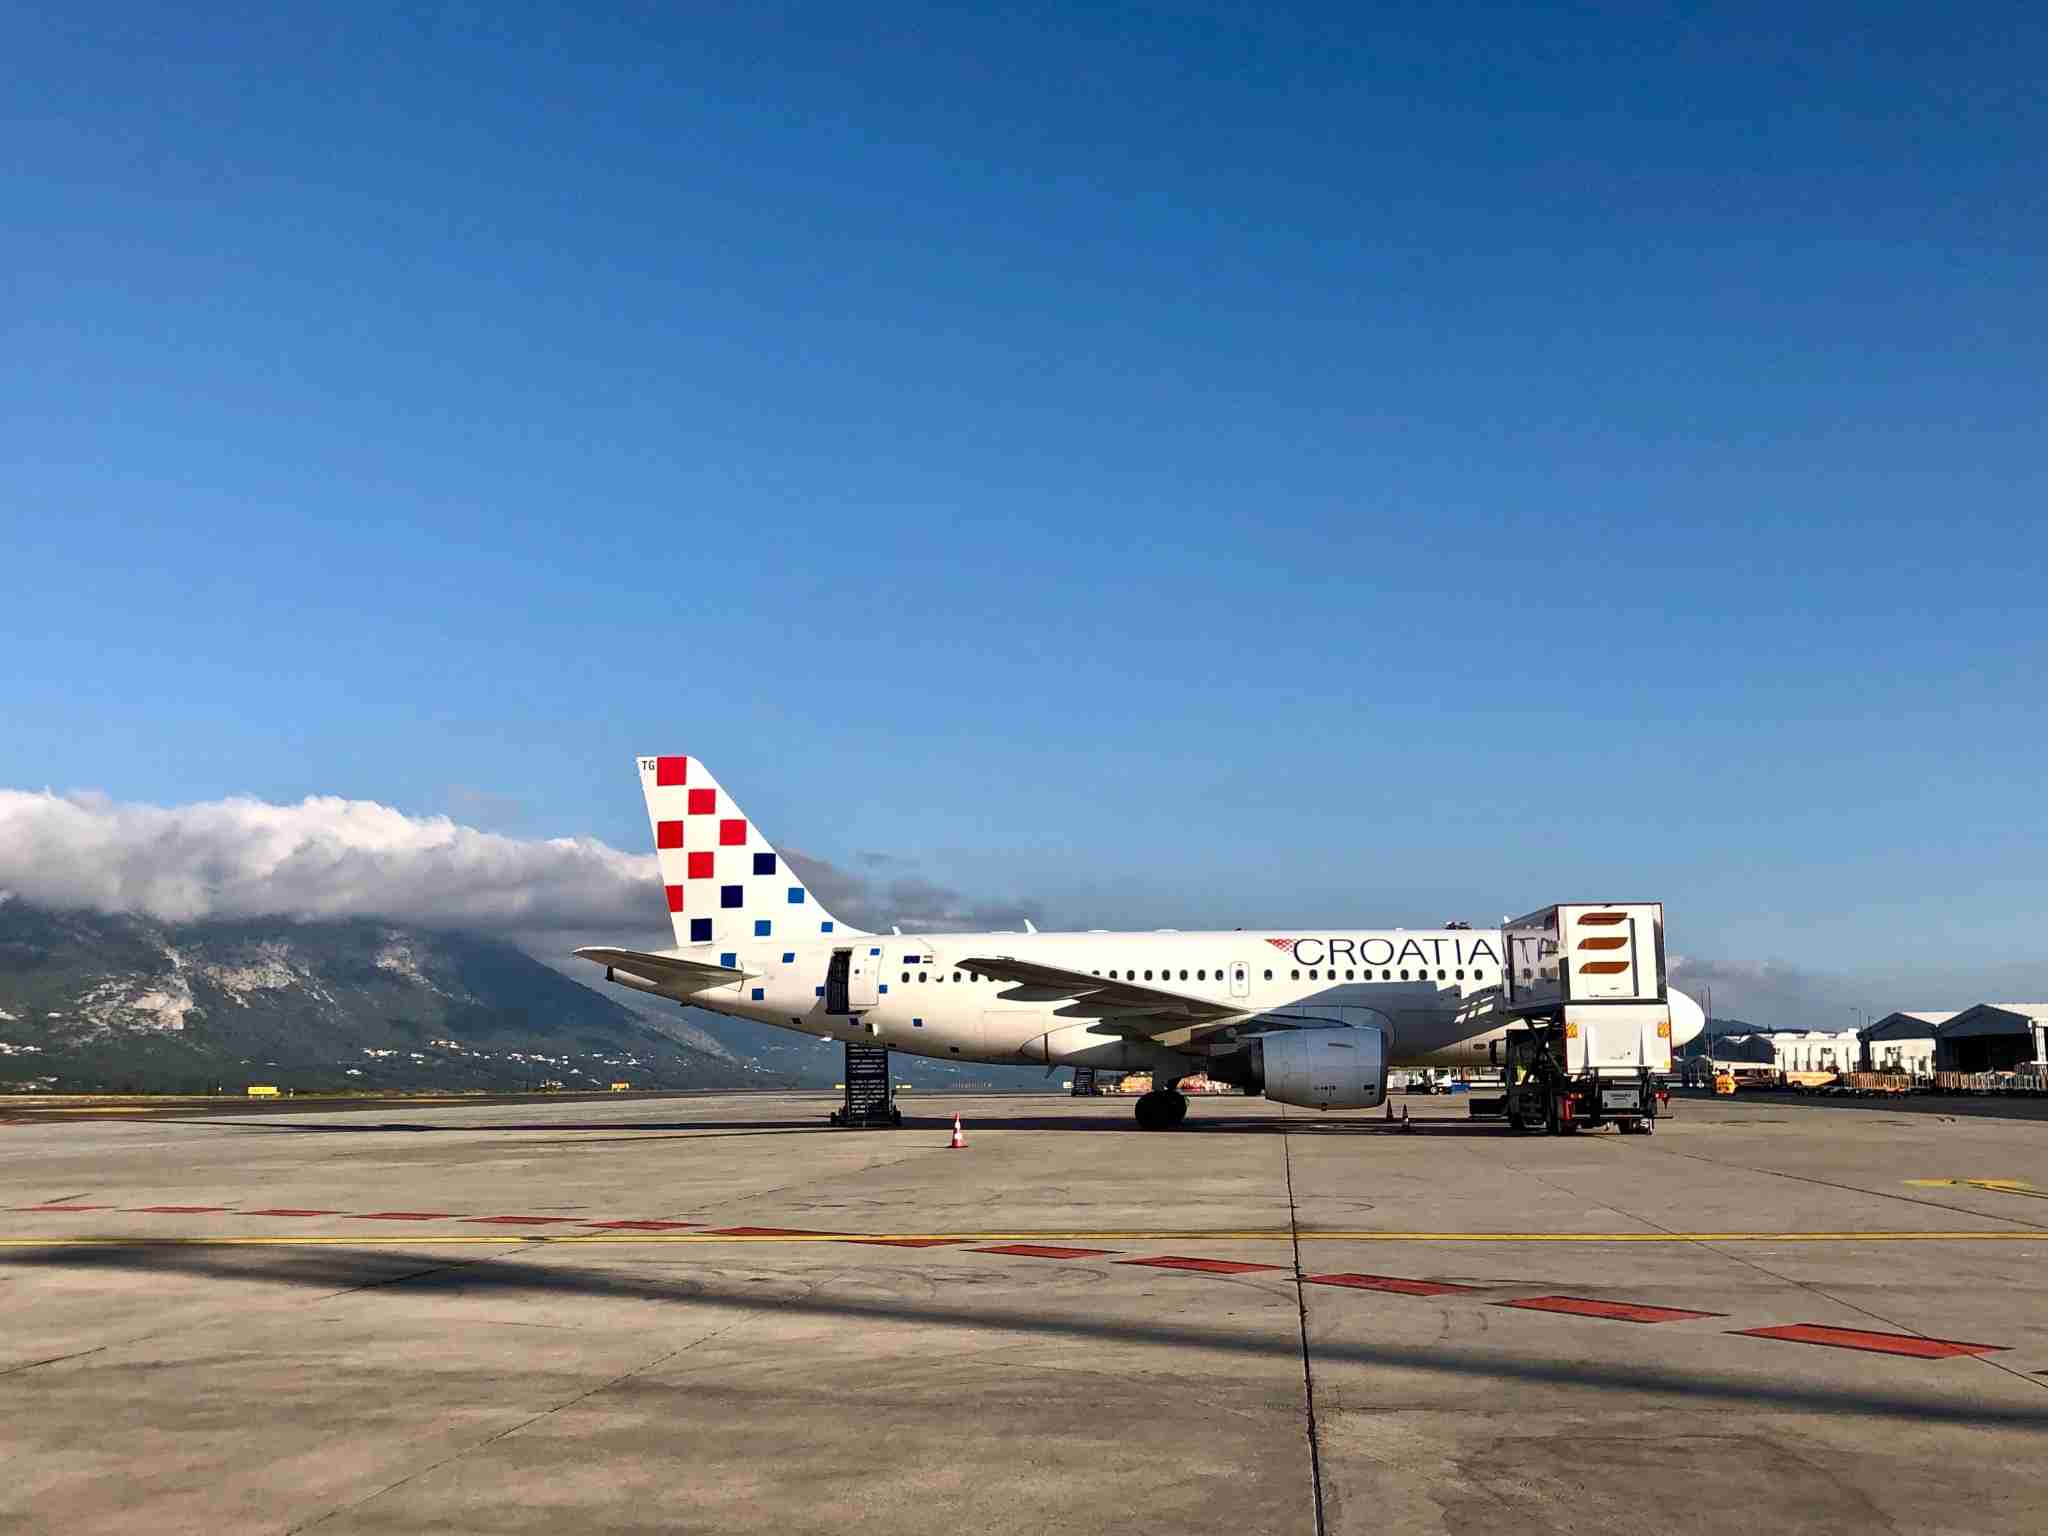 Arrival in Dubrovnik - Image by Christian Kramer / The Points Guy